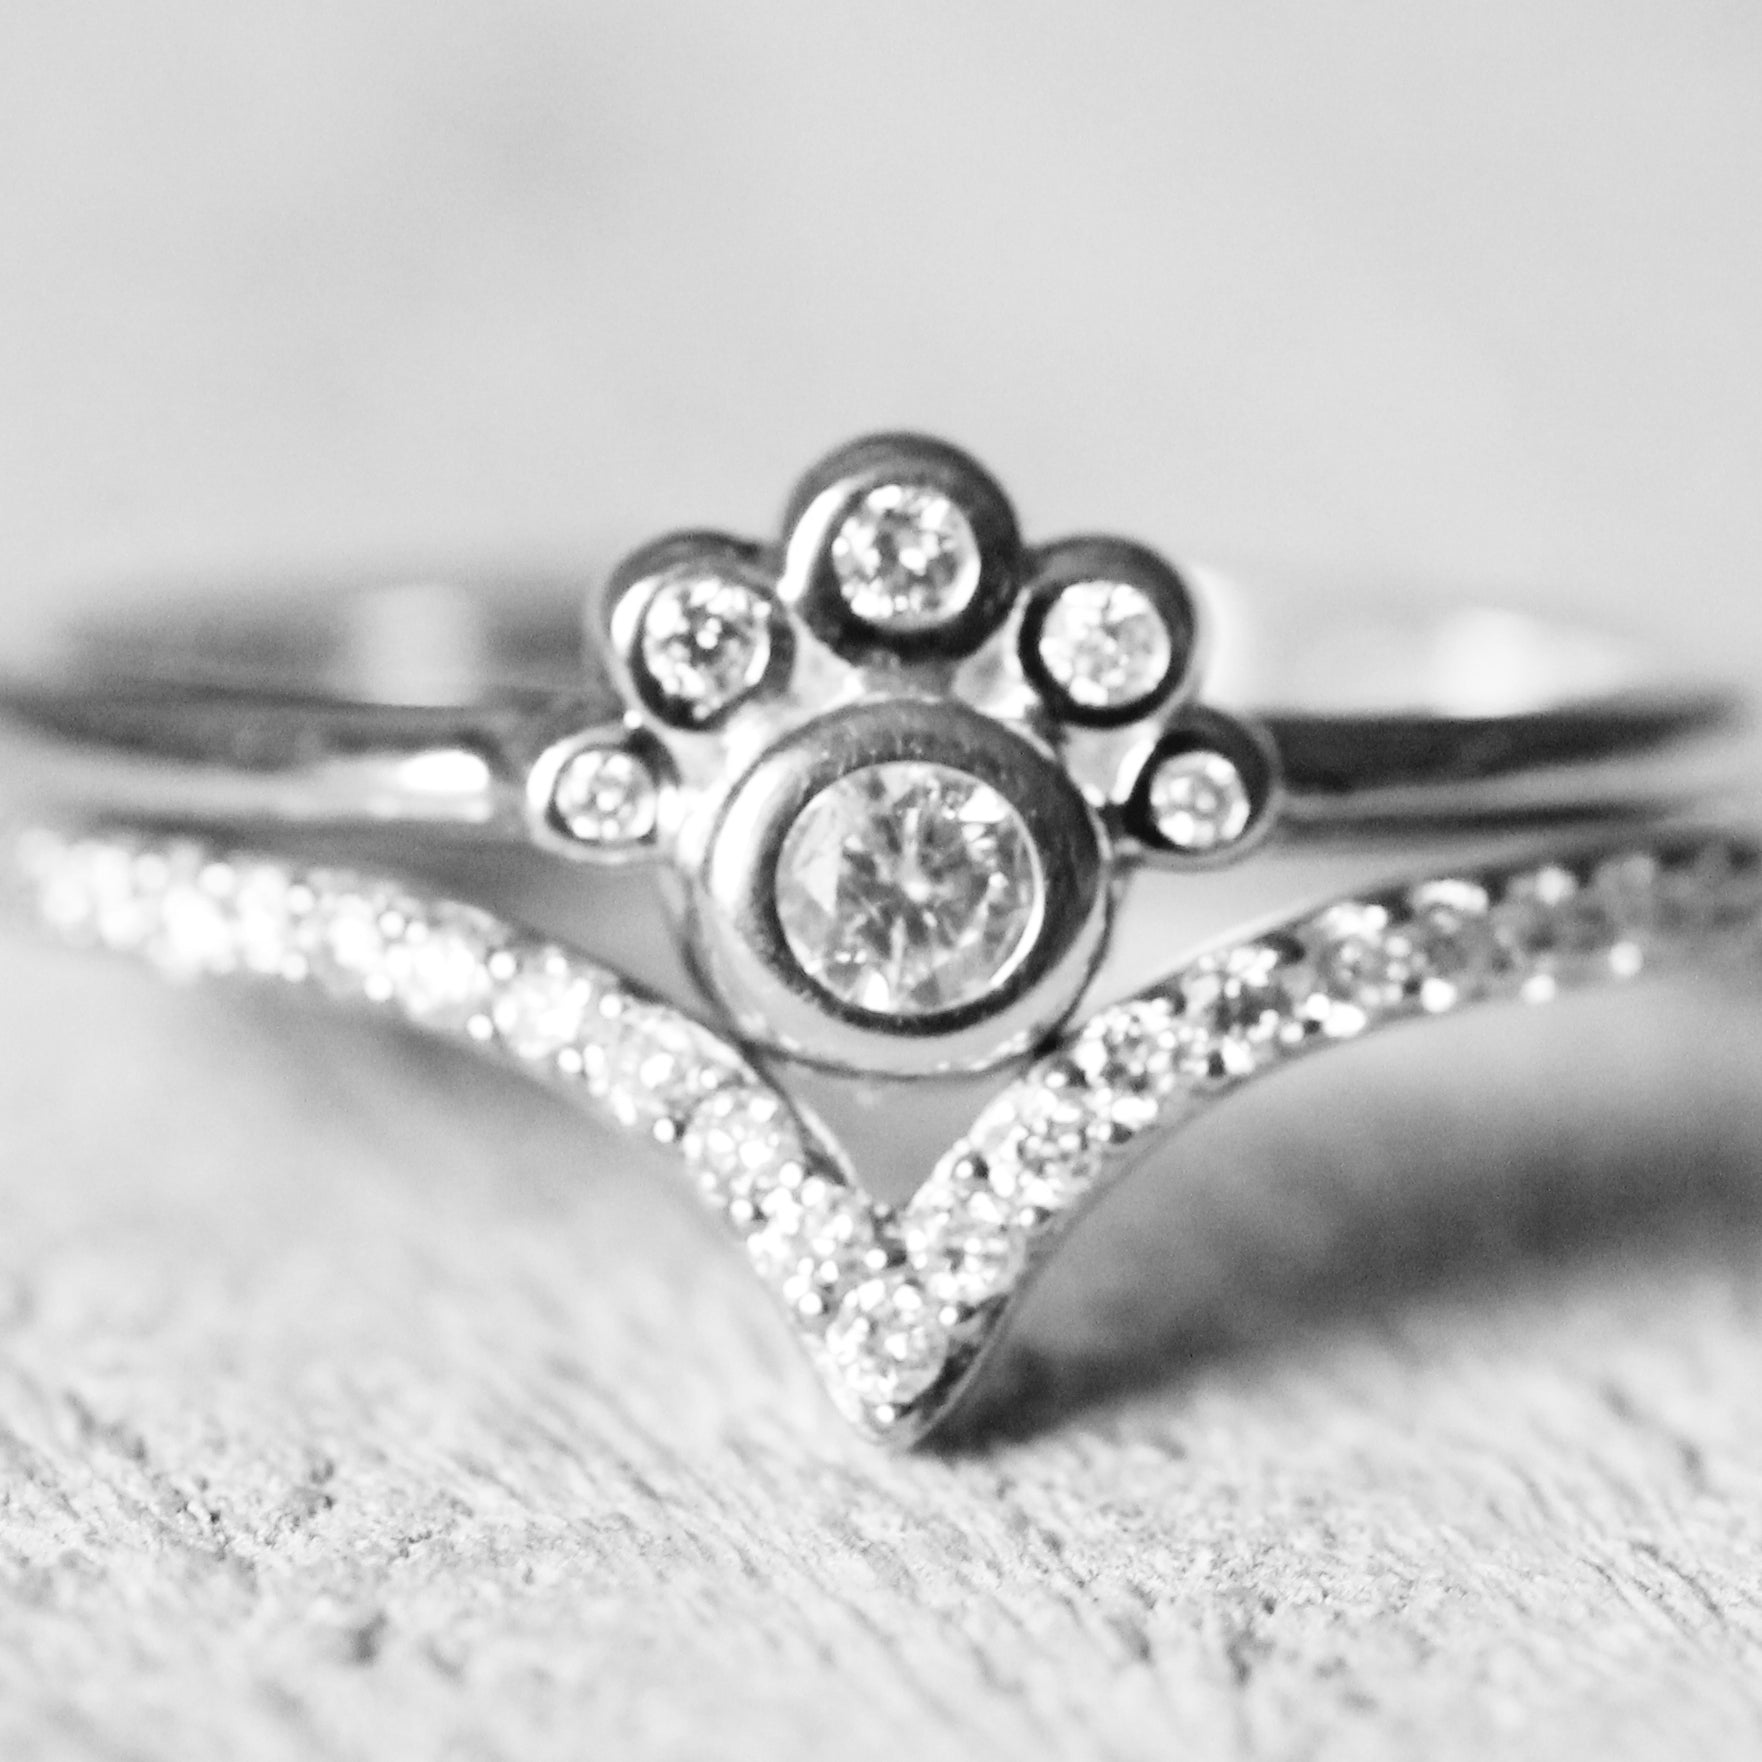 Jules ring with white diamonds in 10k white gold - ready to size and ship - Celestial Diamonds ® by Midwinter Co.